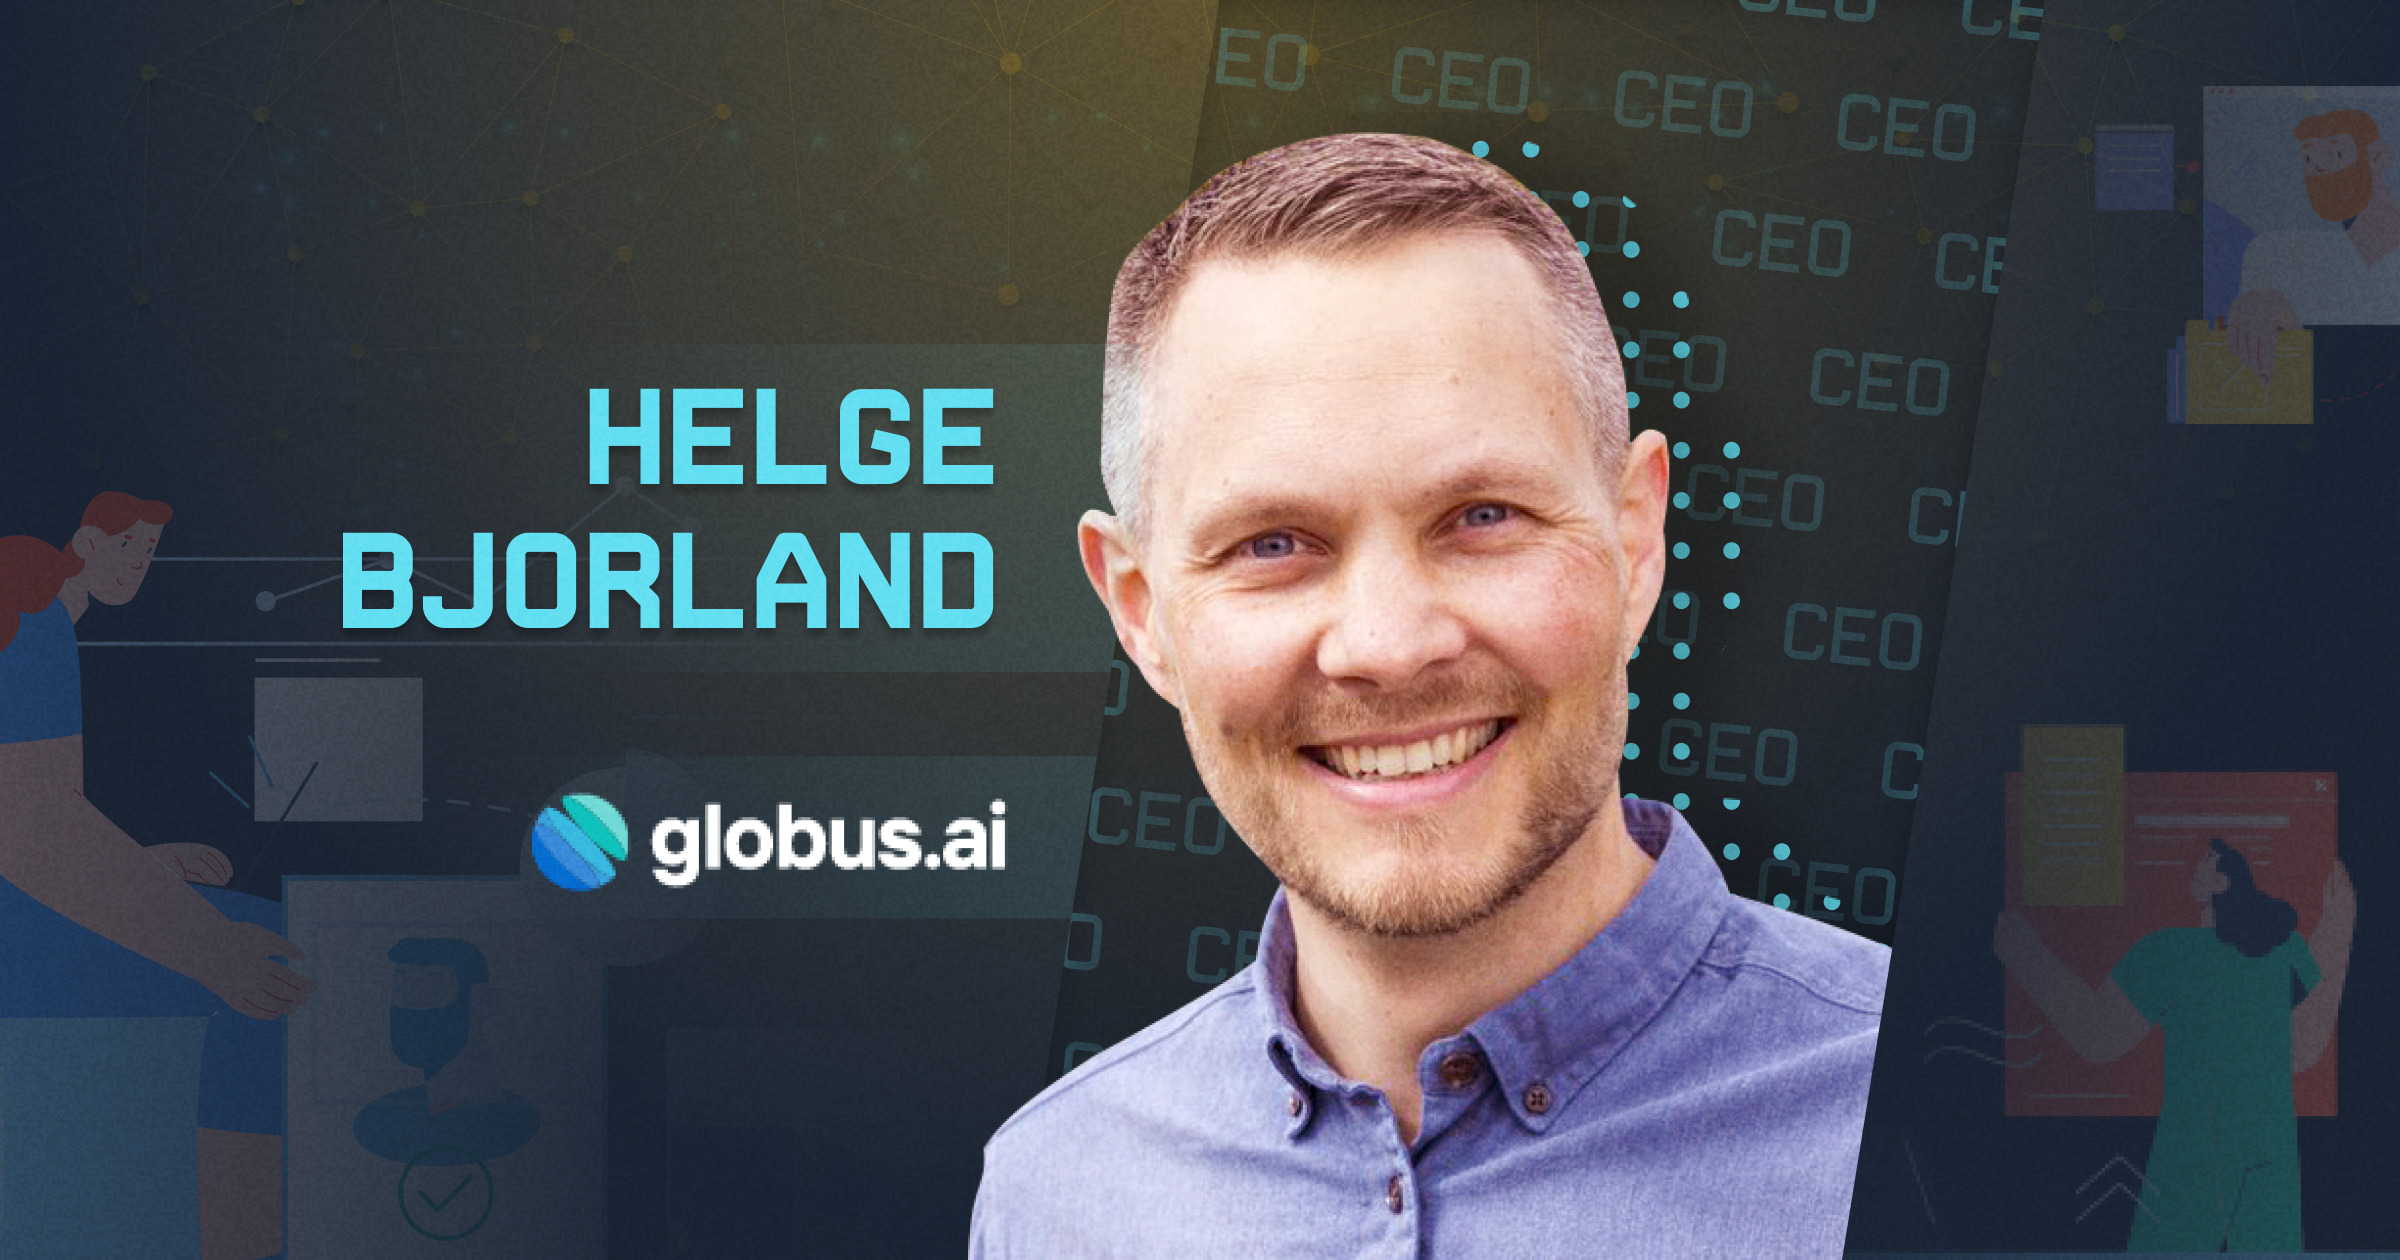 Data Root Labs & Helge Bjorland: Streamlining Candidate Deployment in Healthcare with AI